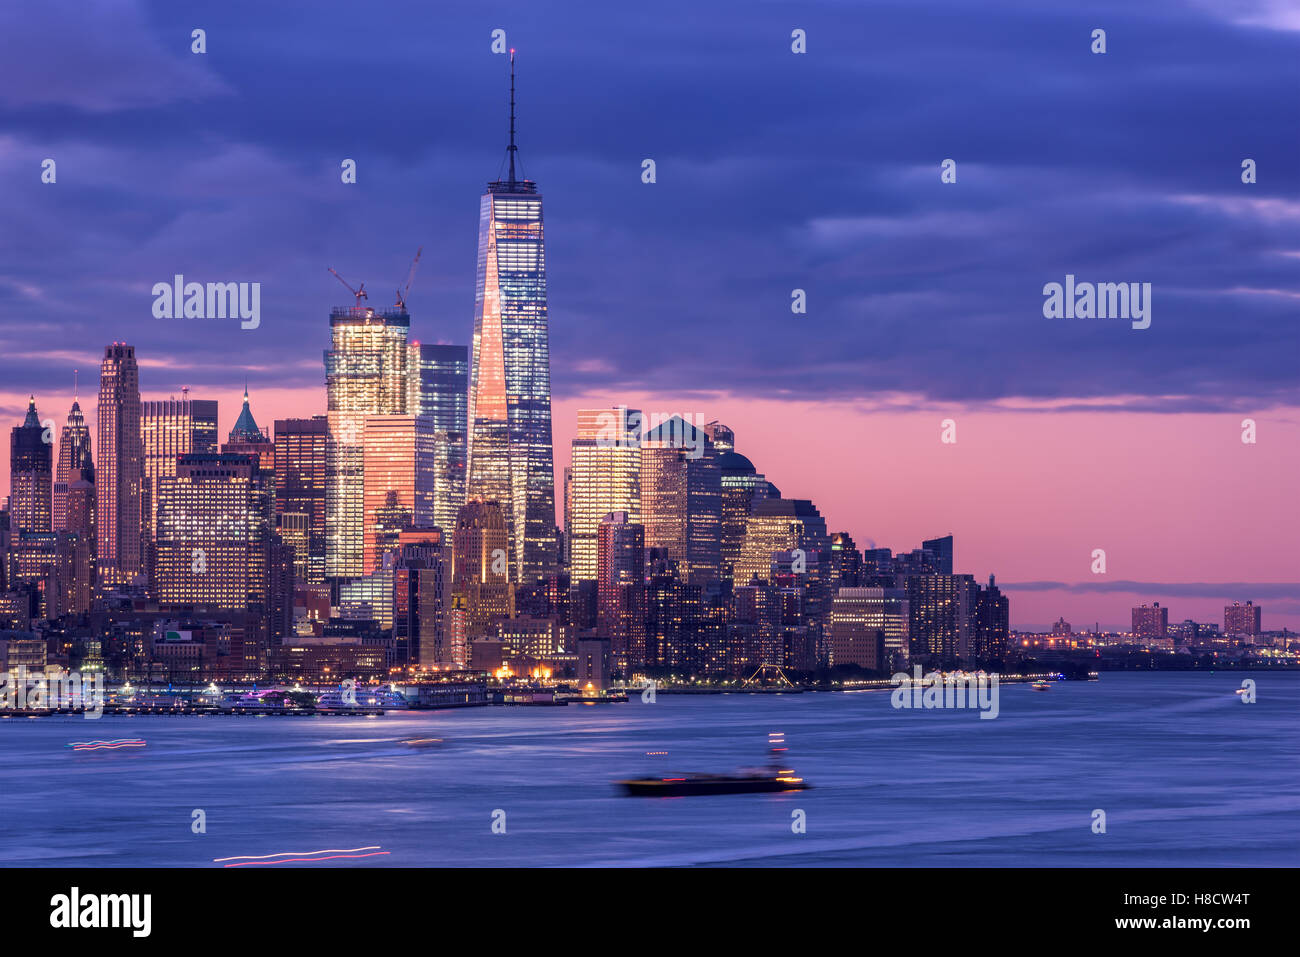 New York City skyline on the Hudson River. - Stock Image